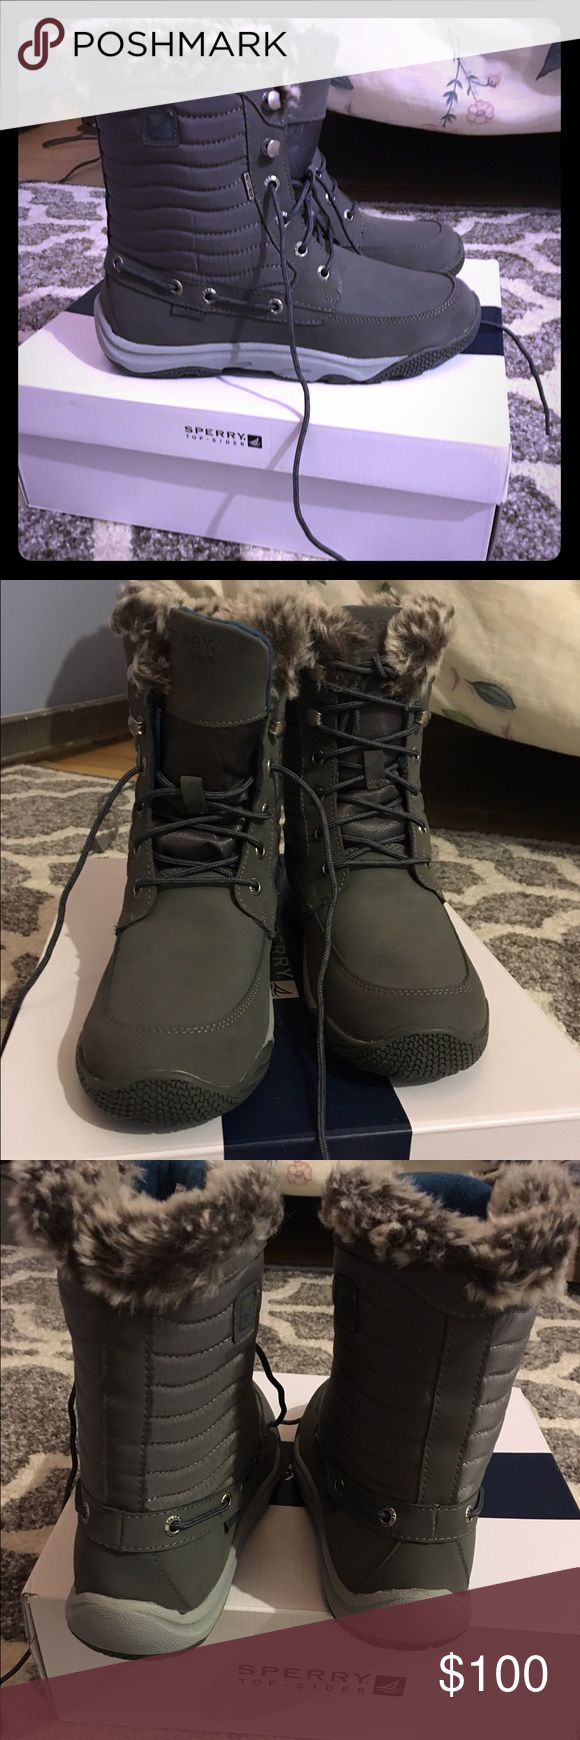 Brand new Sperry winter boots Never worn sperry size 6 winter boots water proof Sperry Top-Sider Shoes Winter & Rain Boots